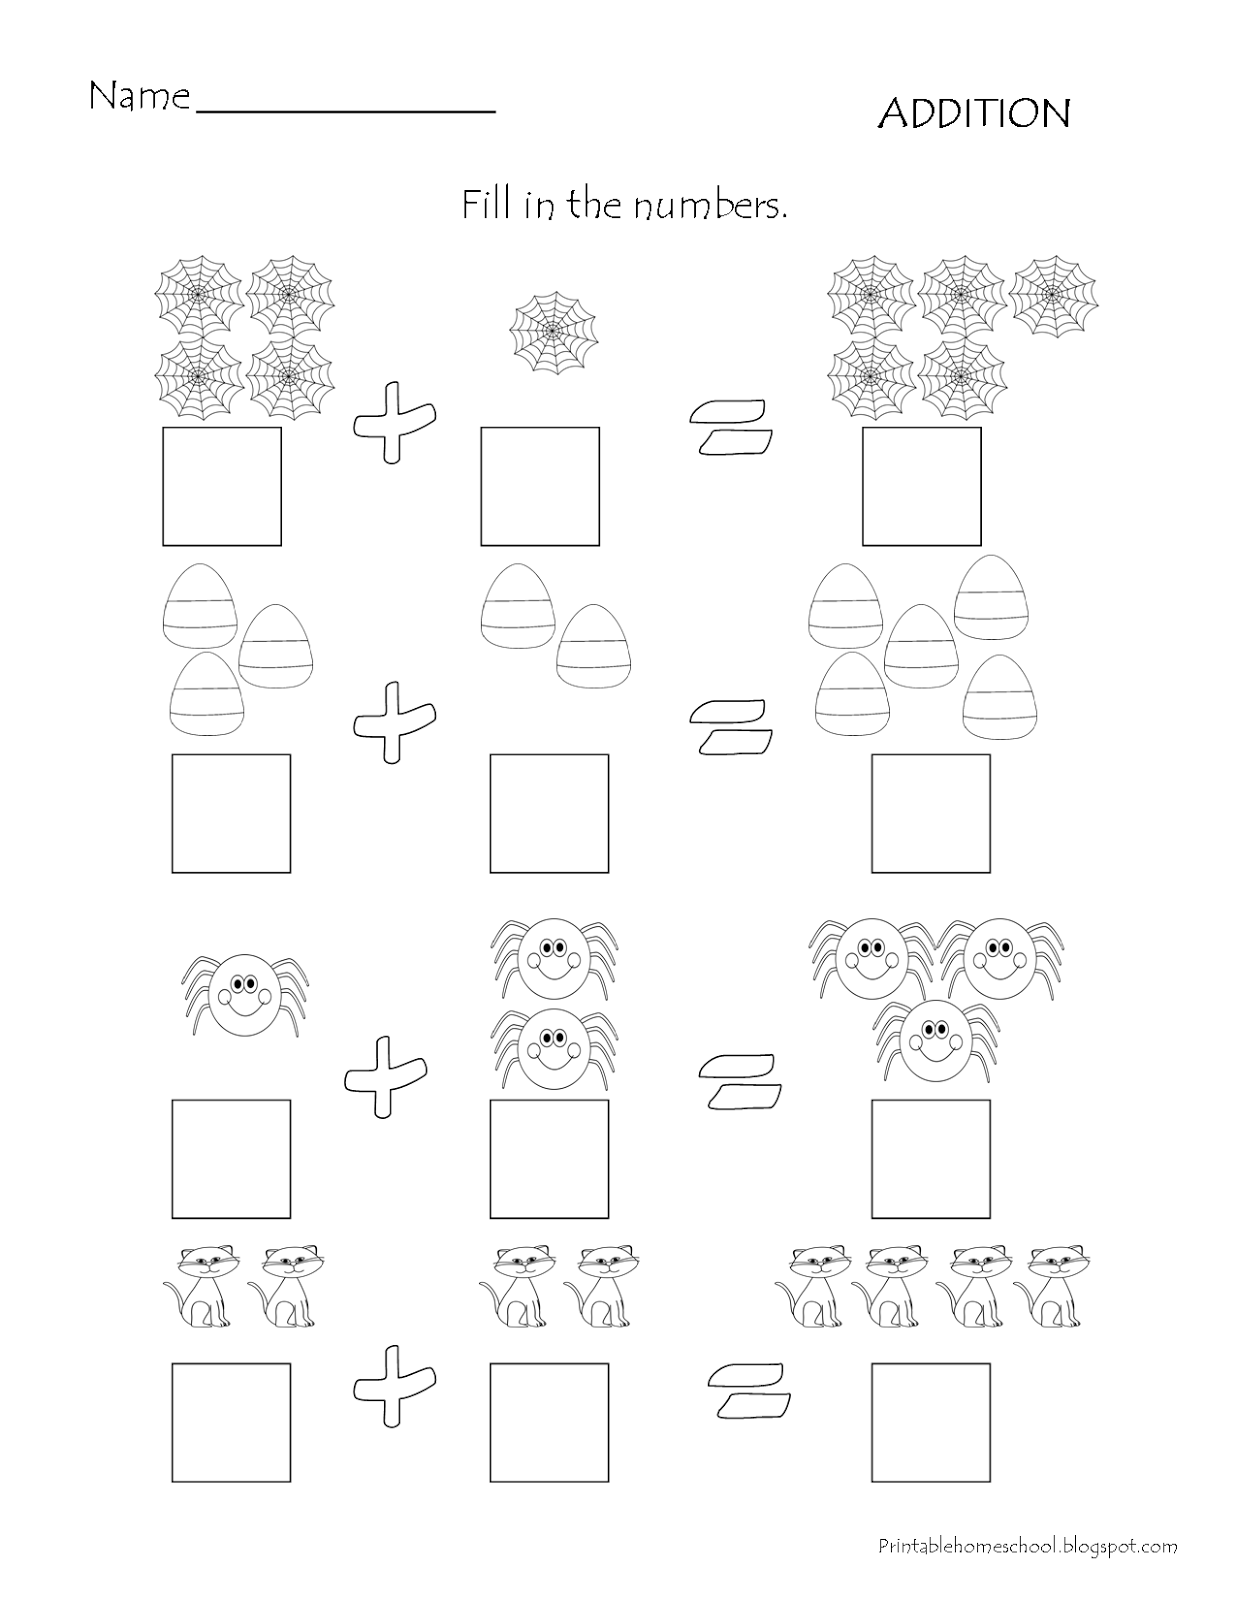 Addition Worksheet Com Imagens